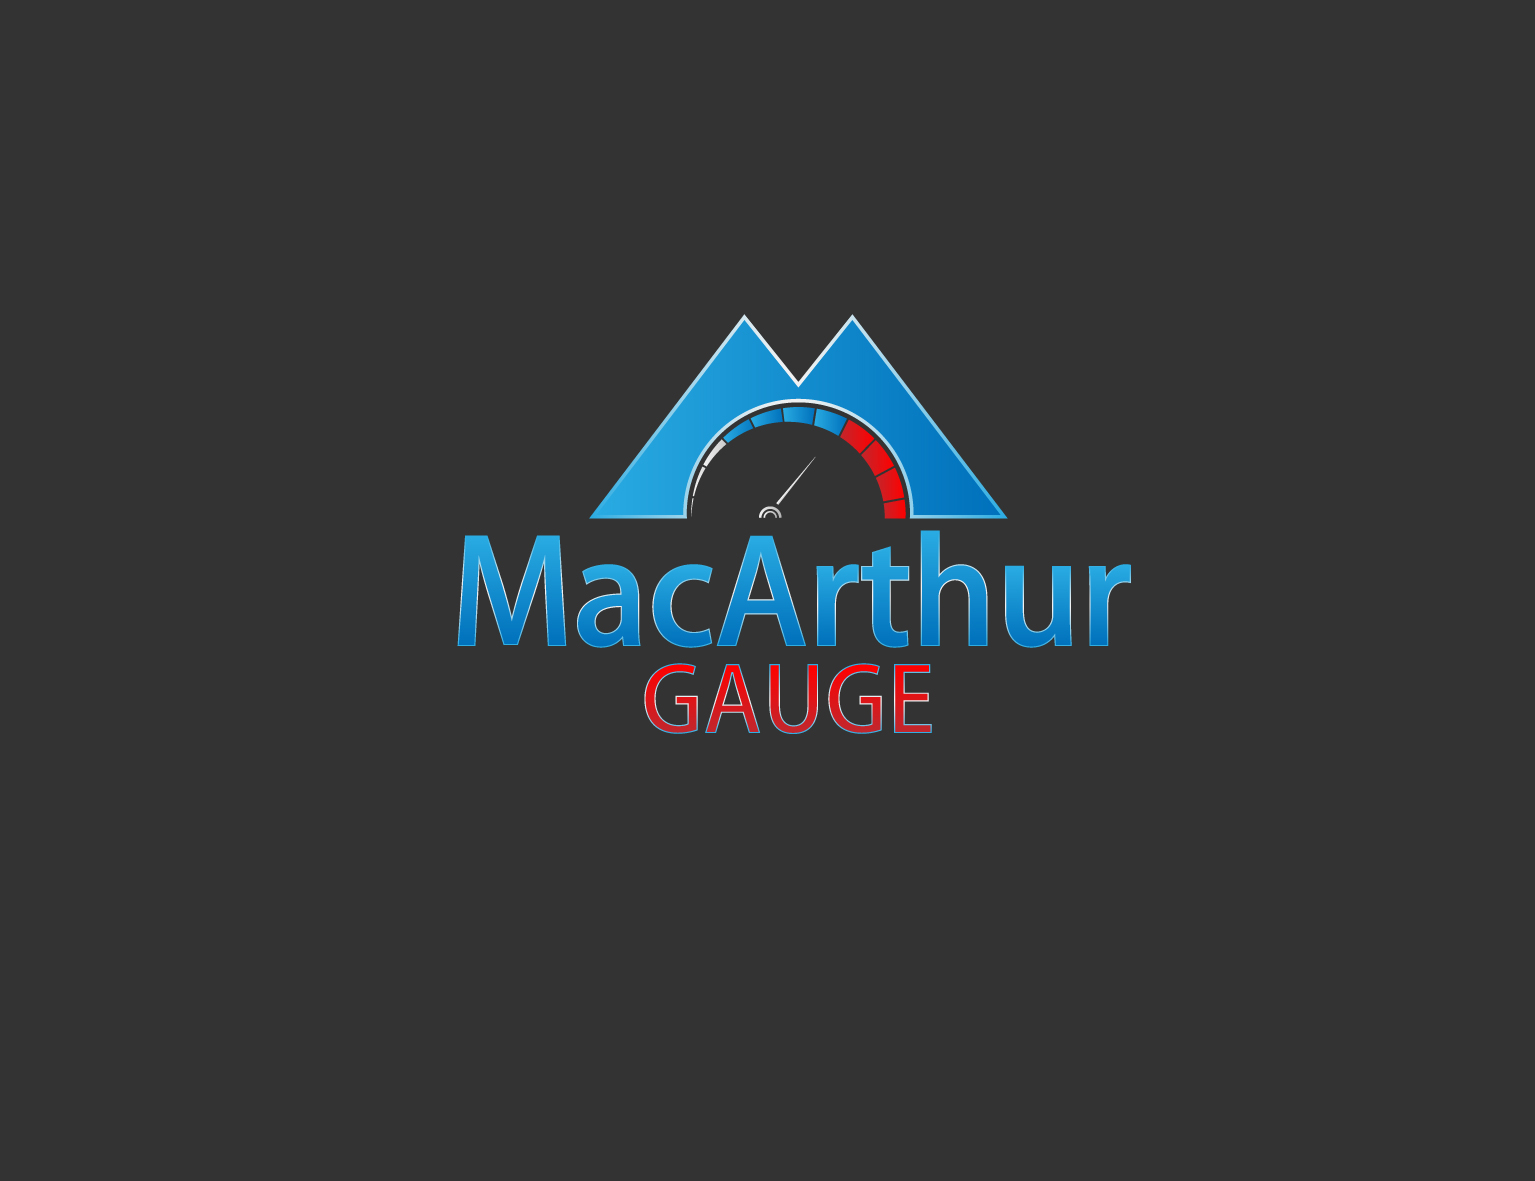 Logo Design by 3draw - Entry No. 235 in the Logo Design Contest Fun Logo Design for MacArthur Gauge.